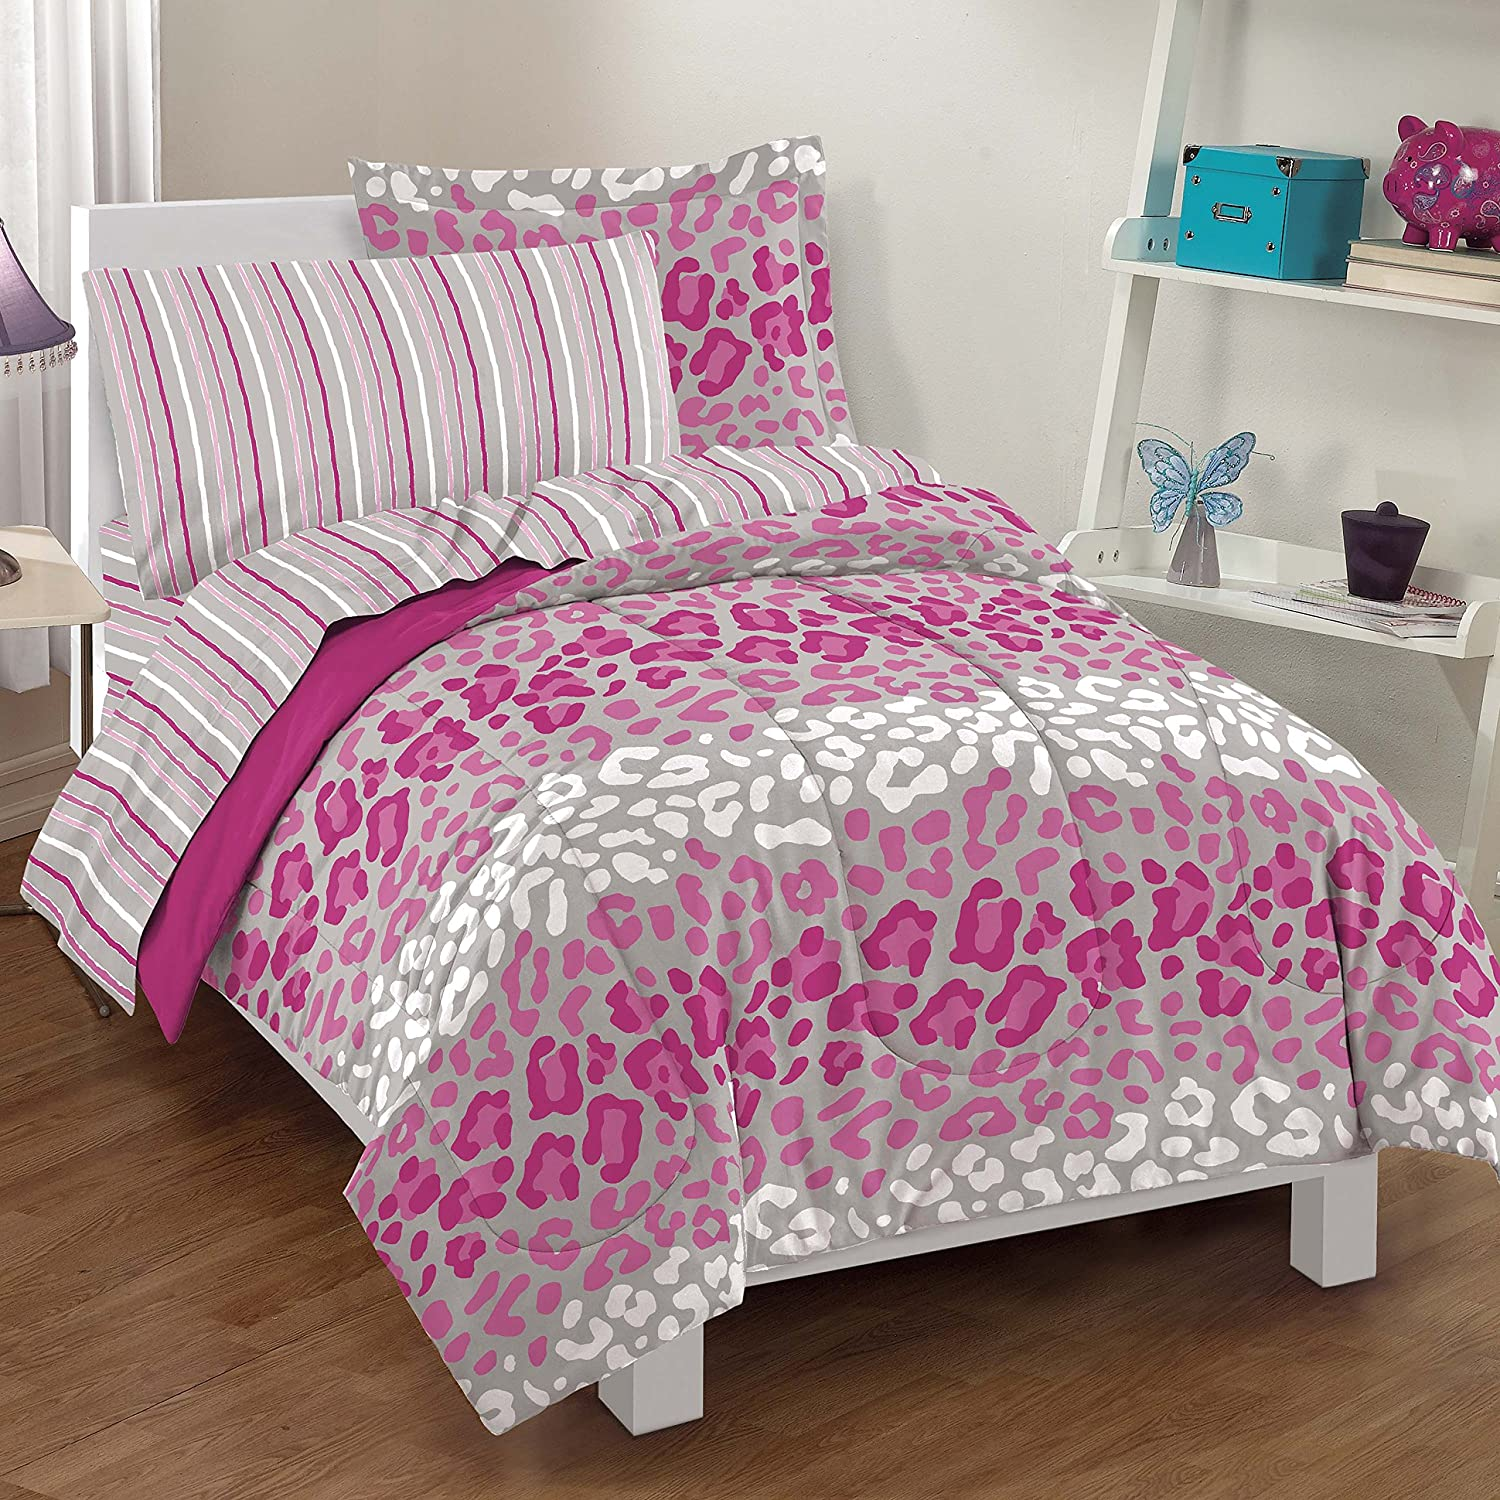 Cheap zebra print bedroom sets - Dream Factory Safari Girl Leopard Ultra Soft Microfiber Comforter Set Pink Full